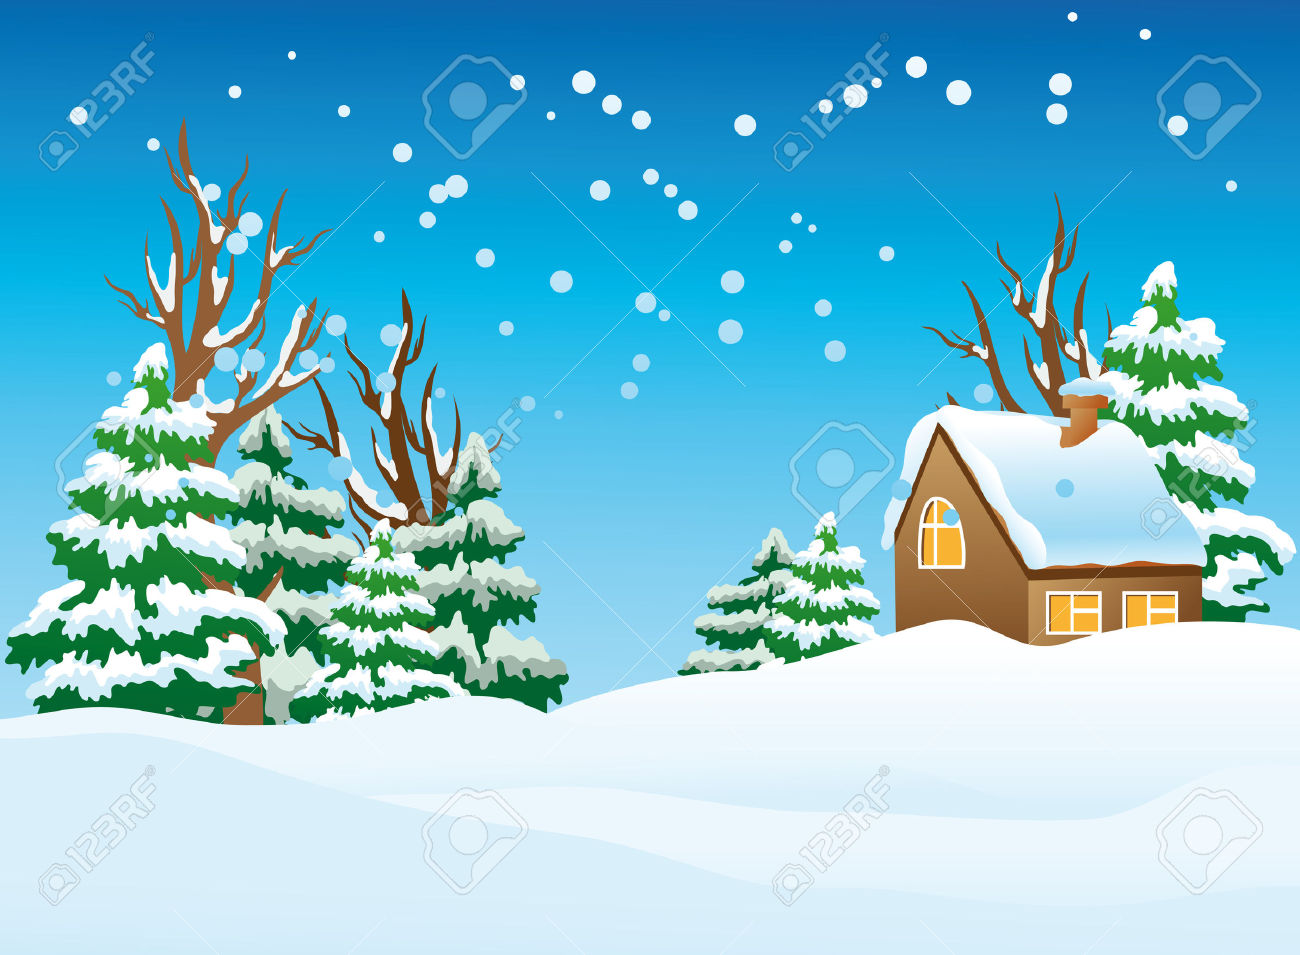 Free Blue Village Cliparts, Download Free Clip Art, Free.